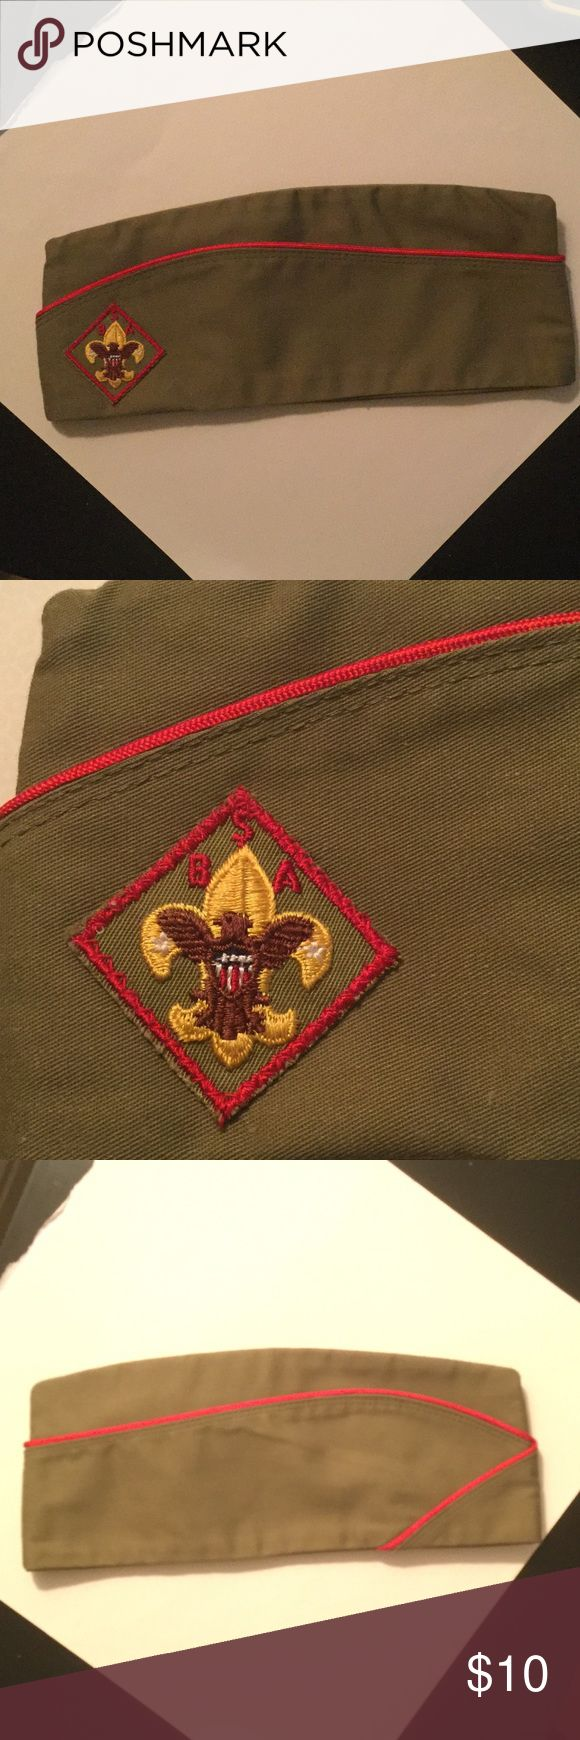 Boy Scout official hat This Boy Scout hat is a size M 6 3/4 - 61/8 Accessories Hats